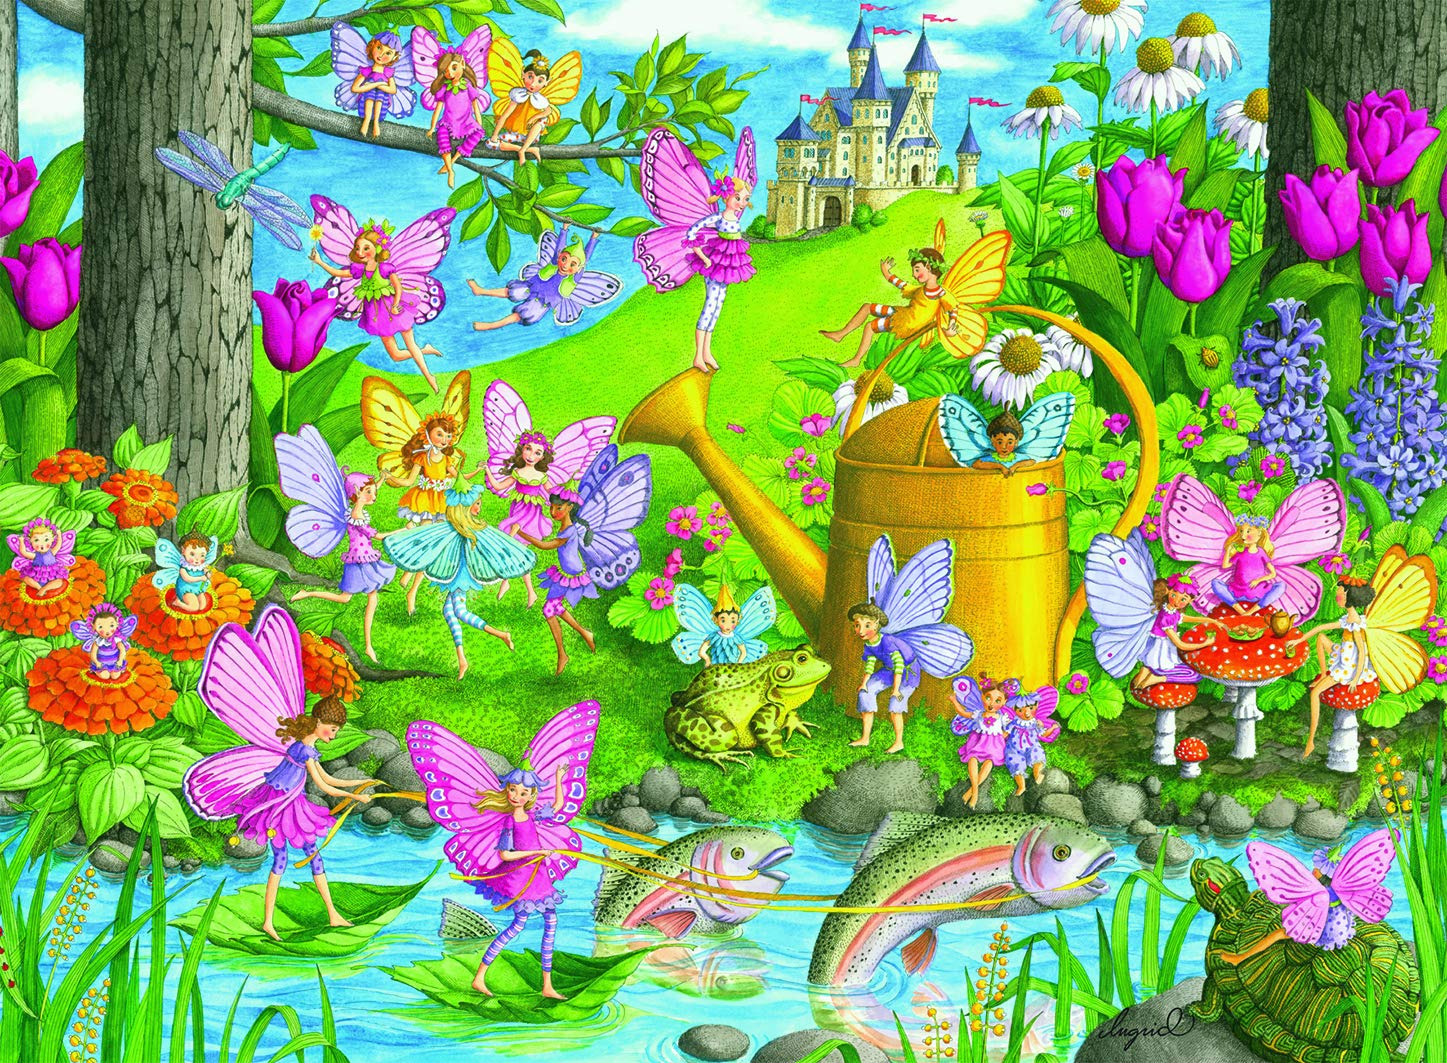 Ravensburger Fairy Playland - 100 Piece Jigsaw Puzzle for Kids – Every Piece is Unique, Pieces Fit Together Perfectly